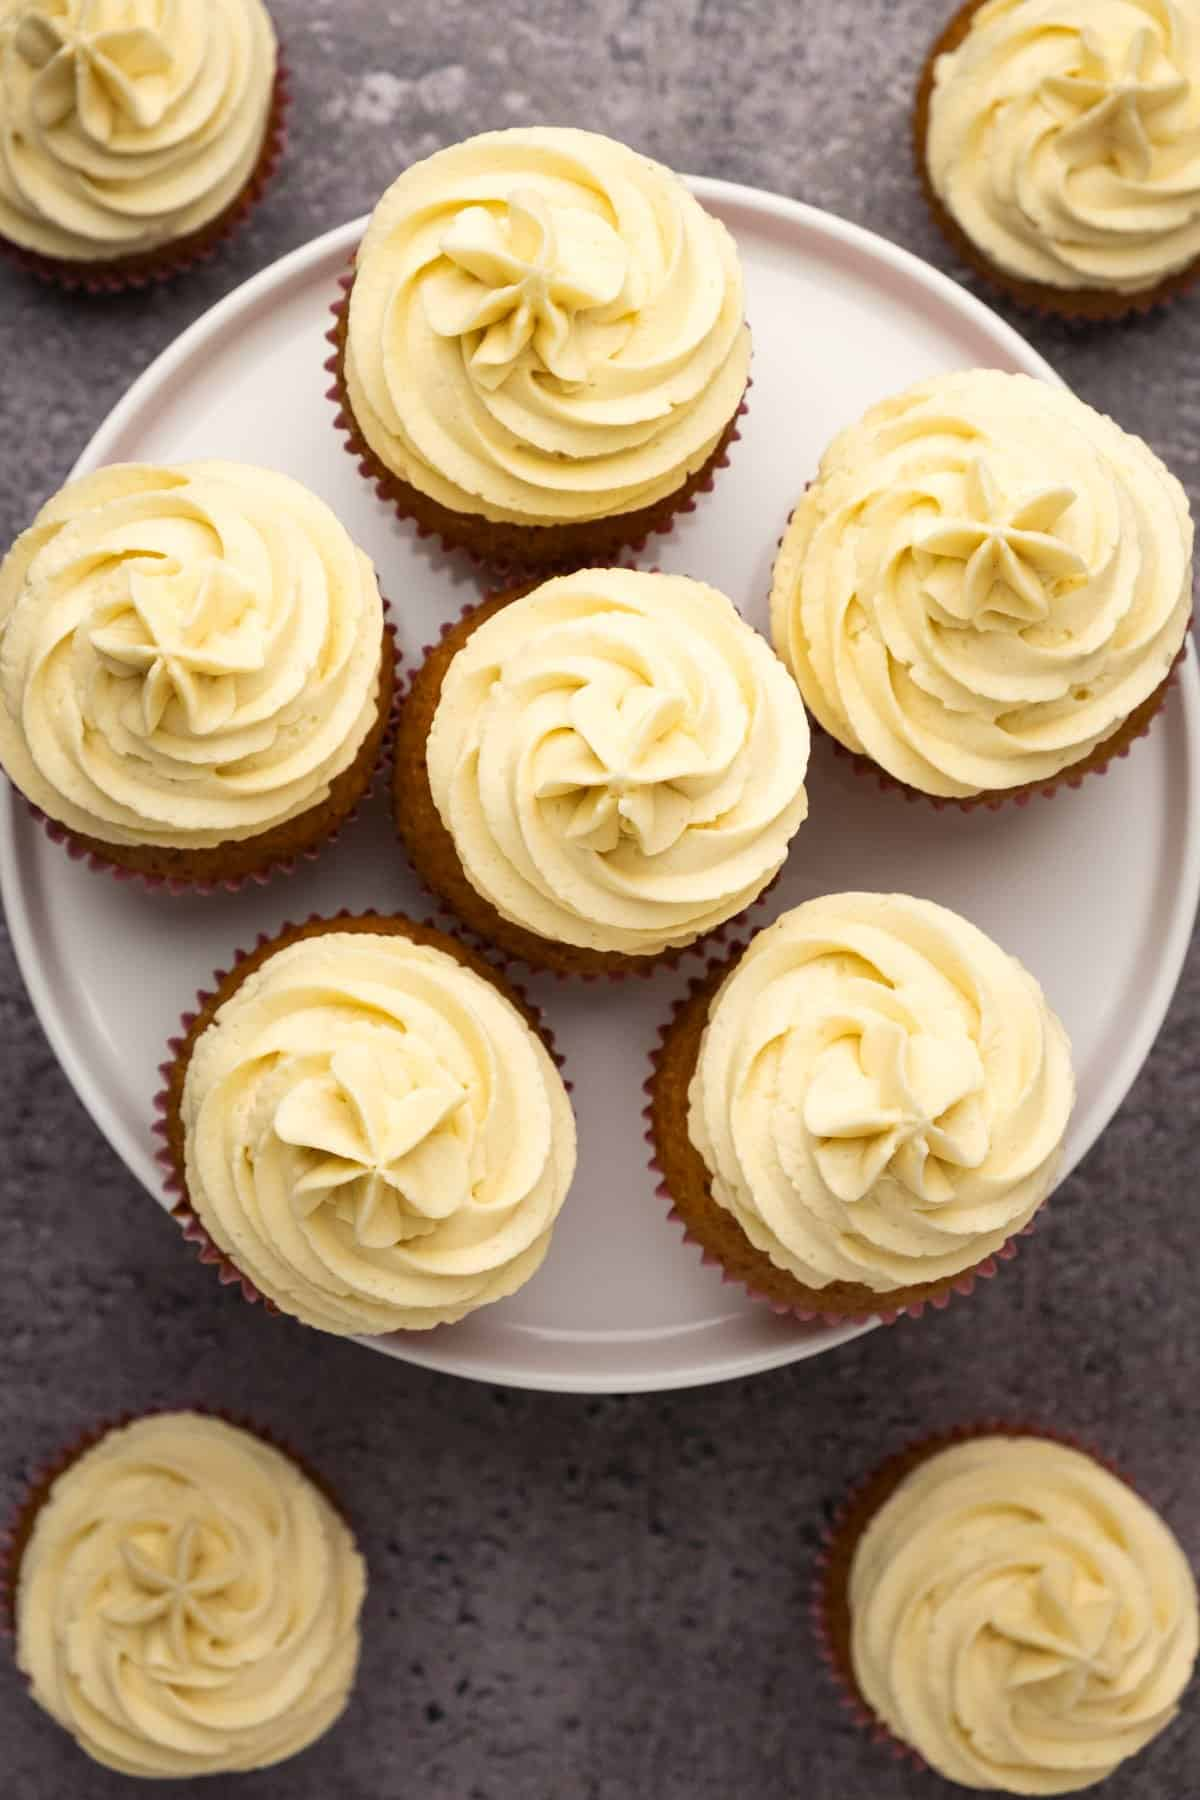 Cupcakes with frosting on a white cake stand.